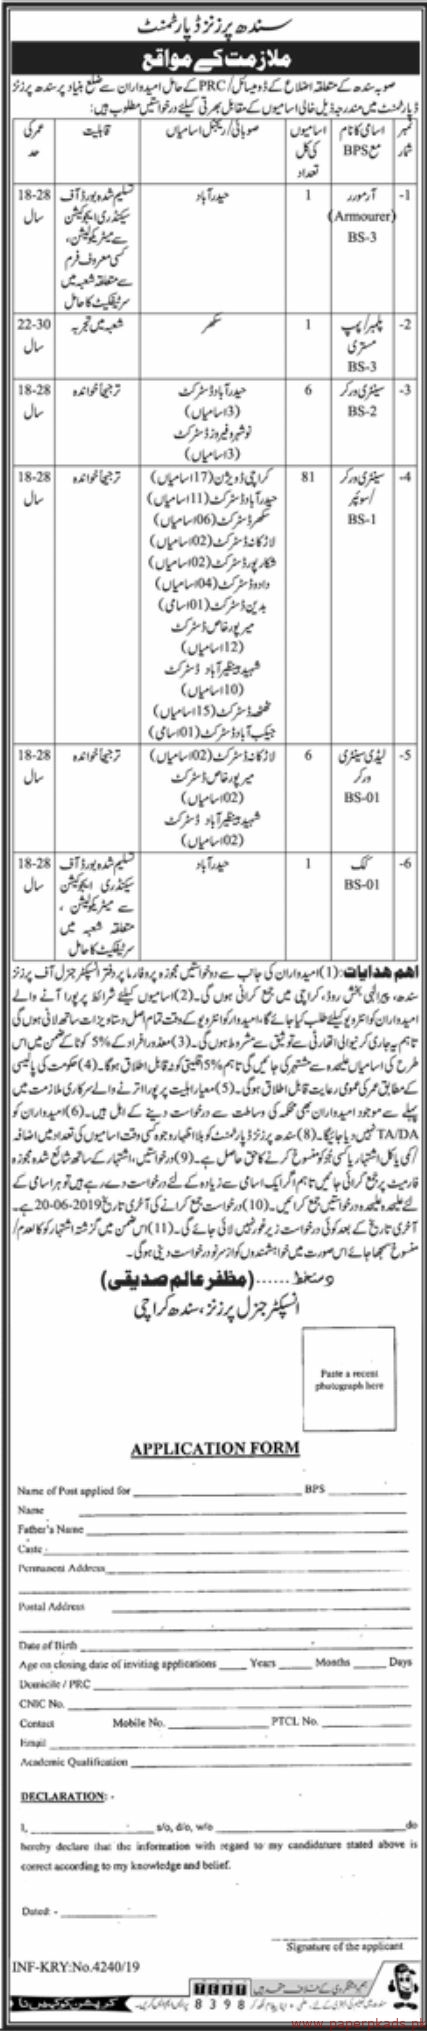 Government of Sindh - Sindh Prisoners Department jobs 2019